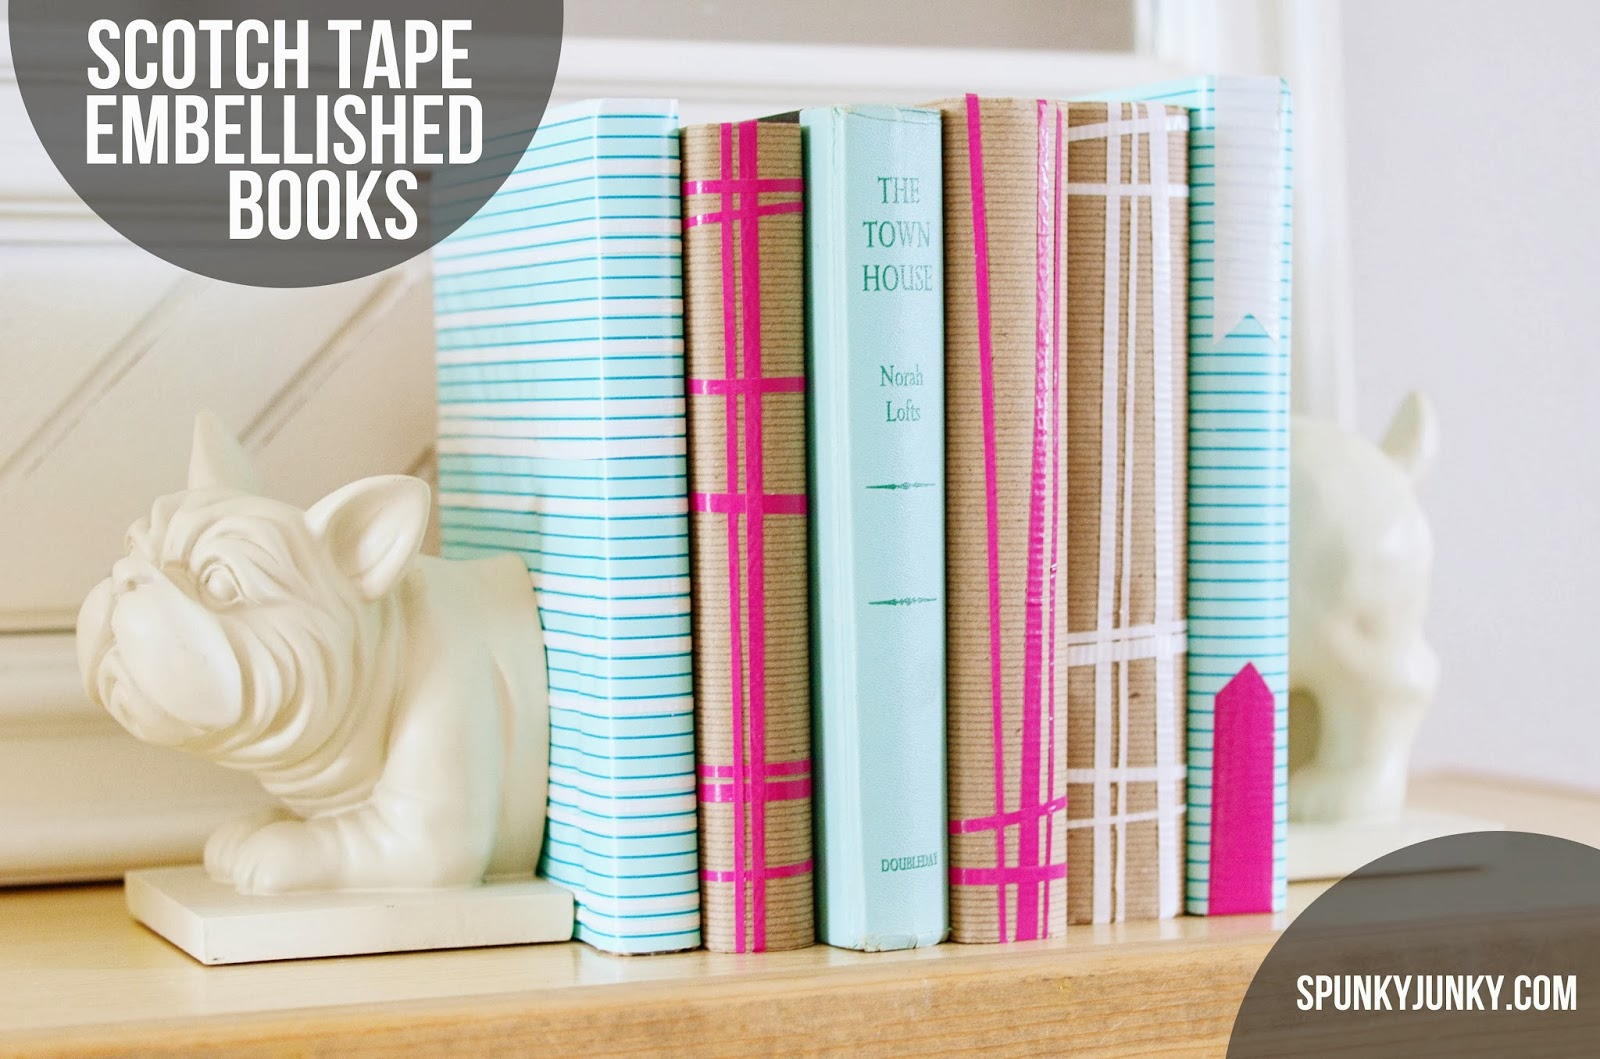 Duct Tape Book Cover Tutorial : Spunky junky diy scotch duct tape embellished book covers